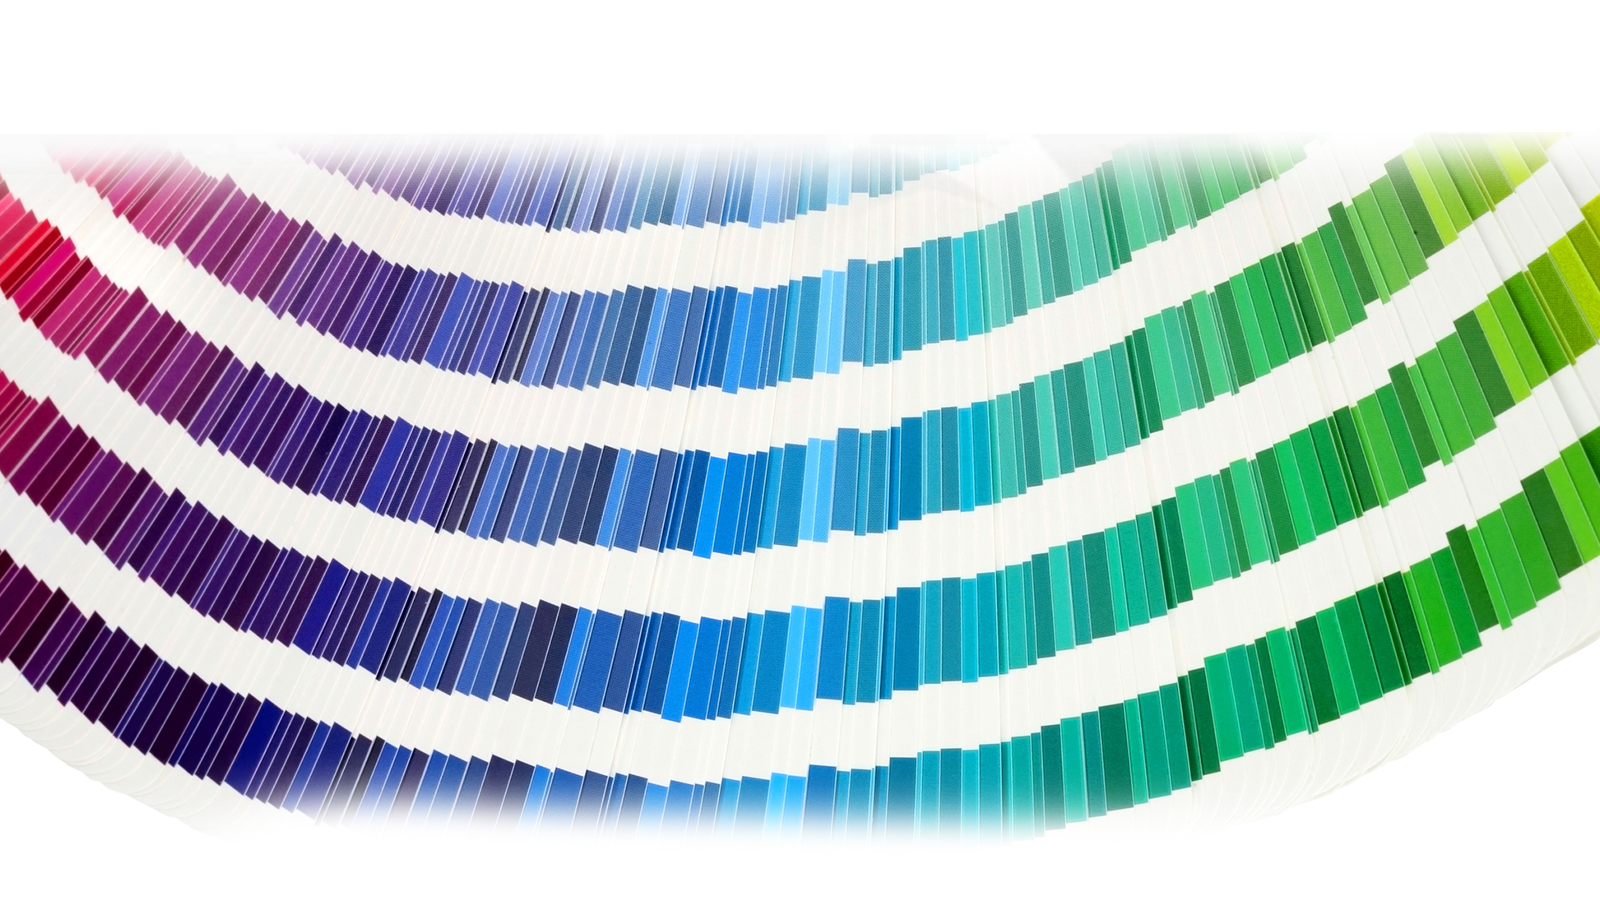 colour matching for promotional product branding